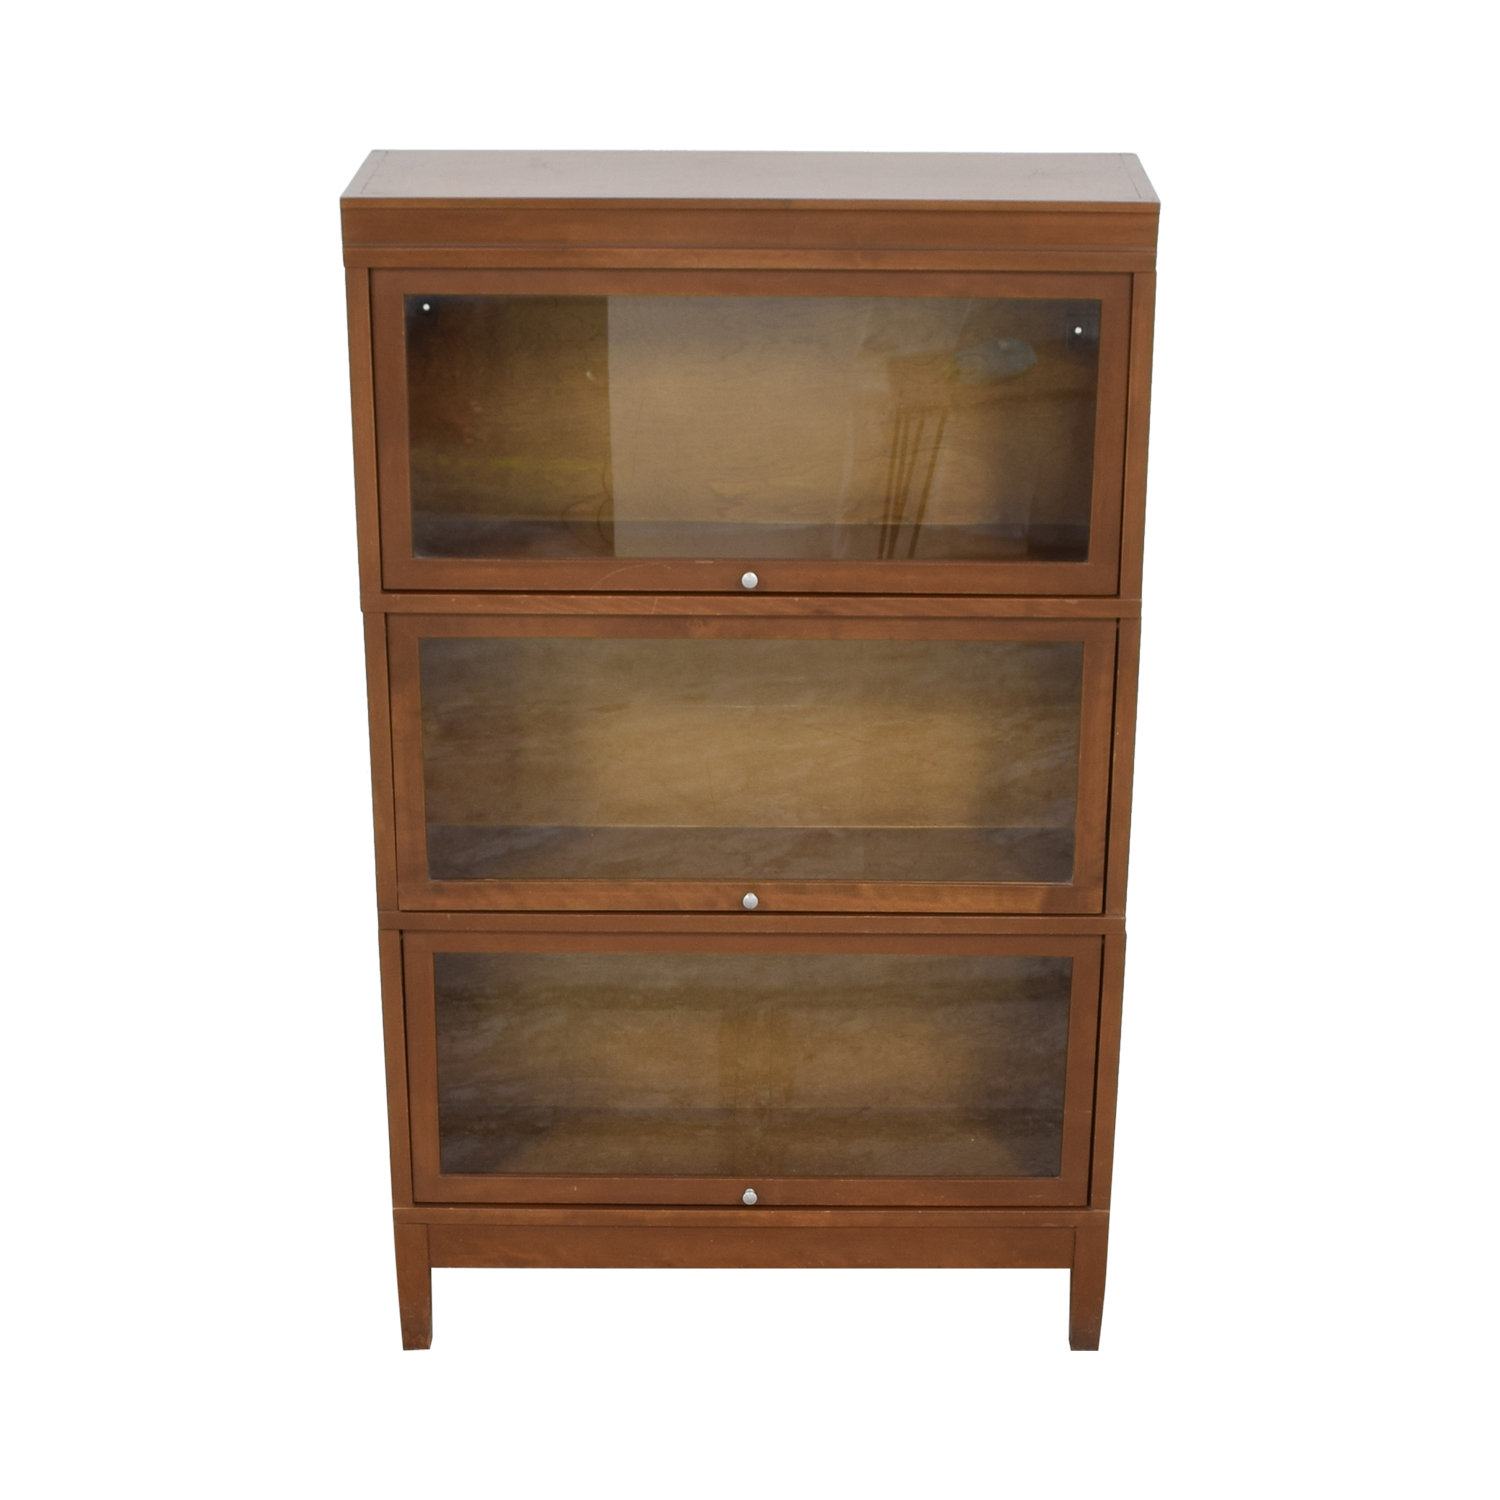 Hale Sectional Barrister Three Stack Bookcase Hale